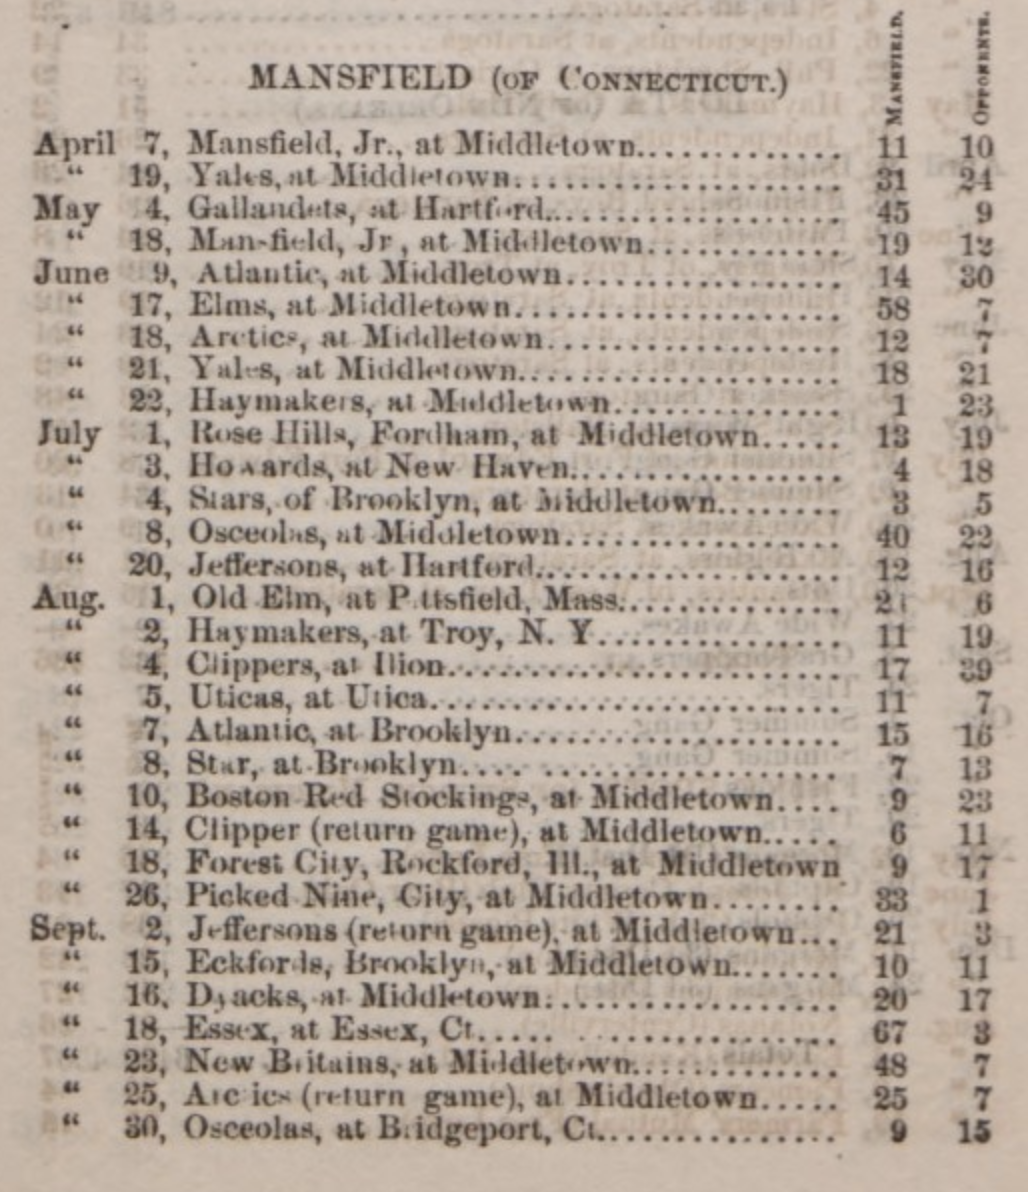 Mansfields of Middletown schedule and results, 1872.